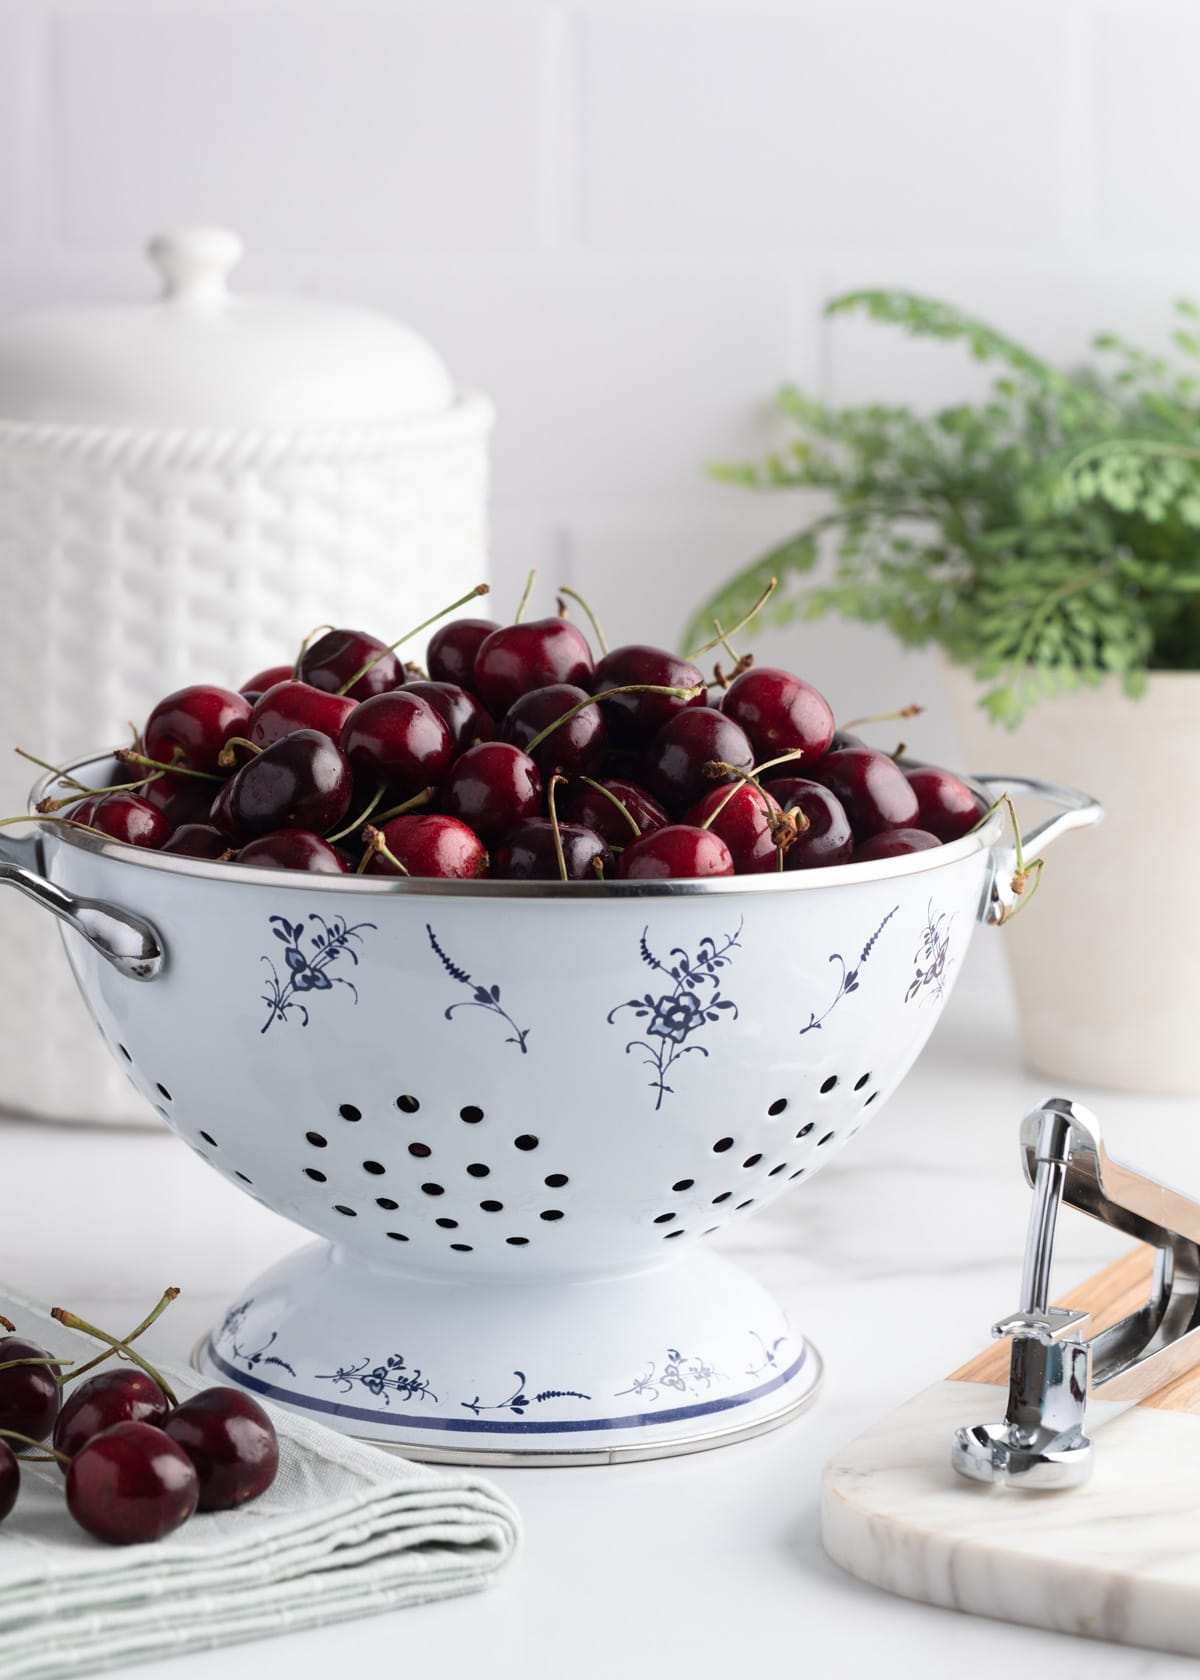 fresh bing cherries in a white enameled colander, on a marble countertop against a white subway tile kitchen background